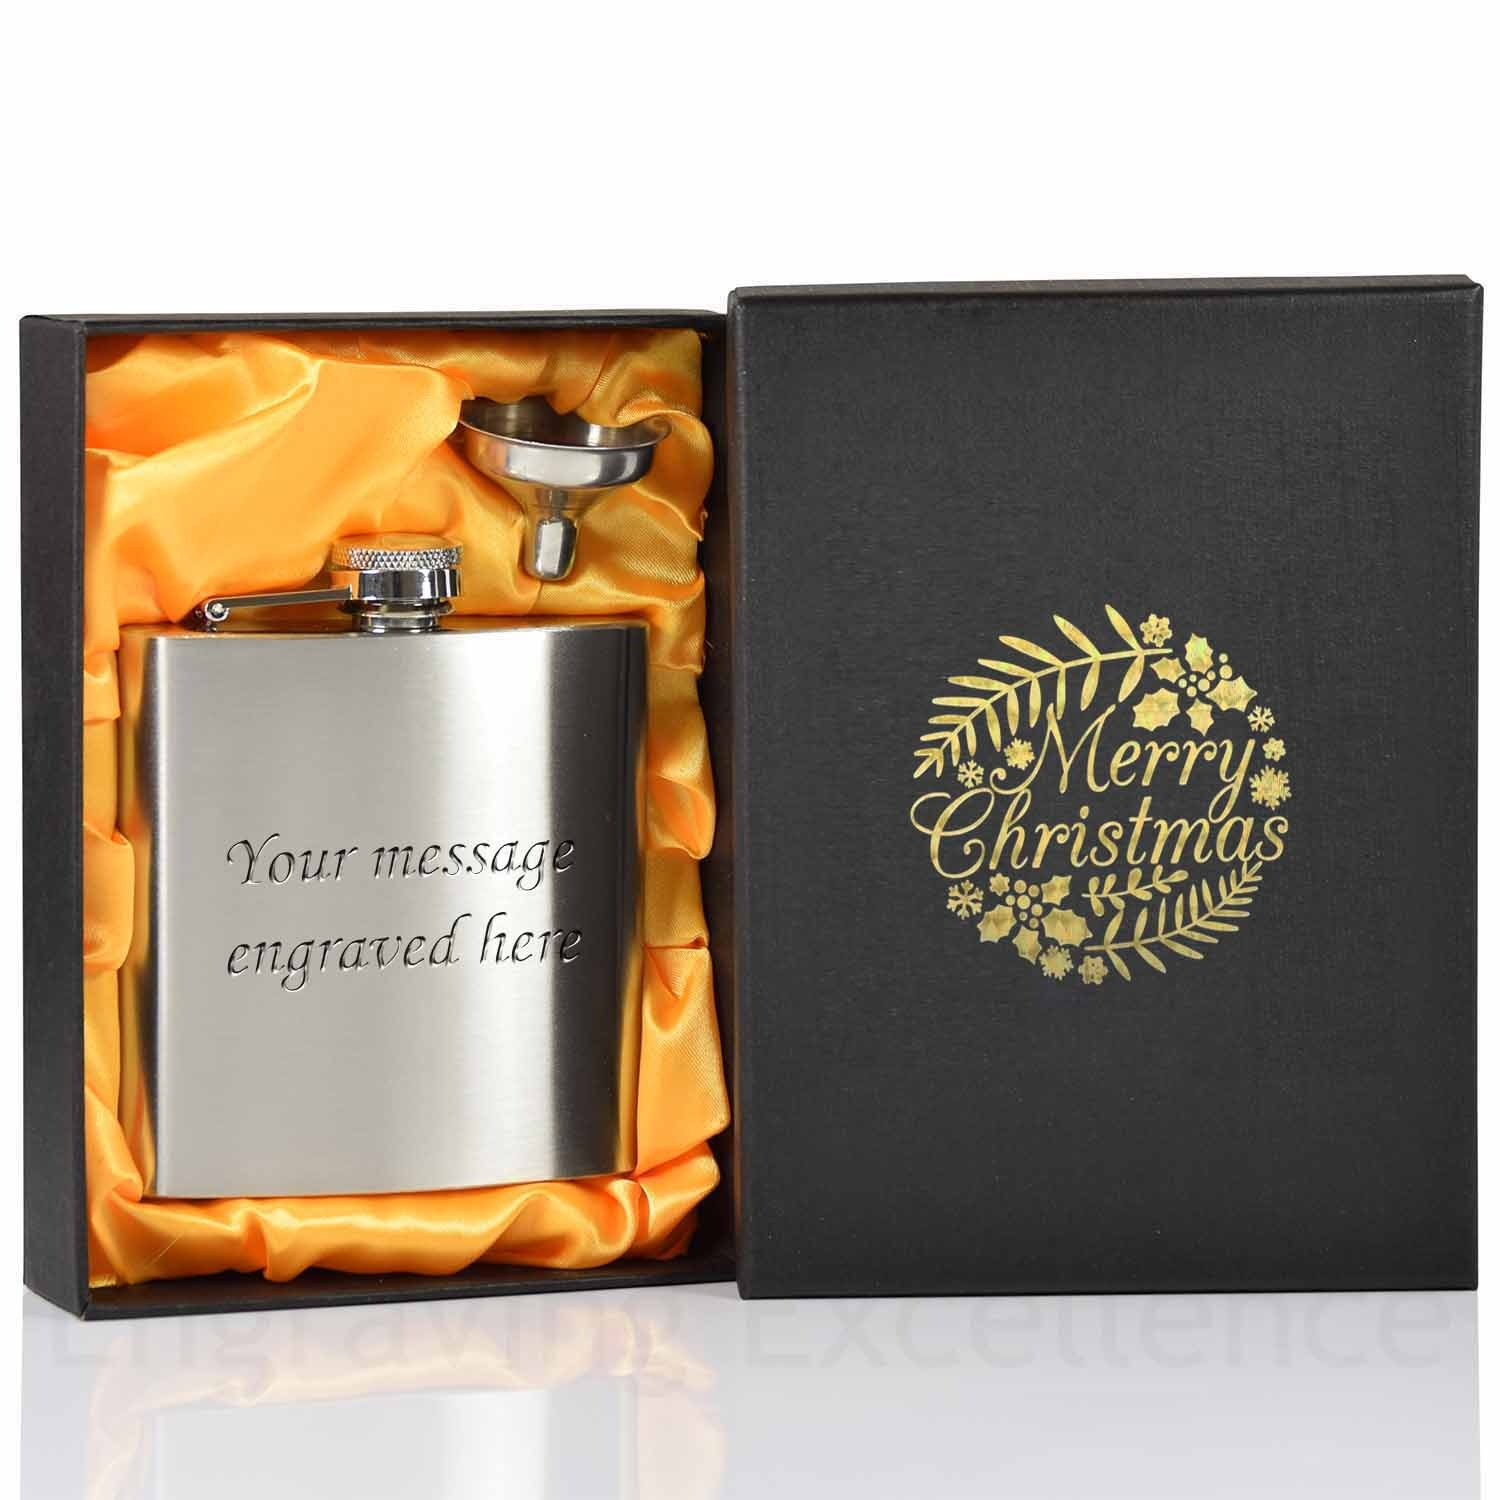 6oz Hip Flask with funnel and Gift Box - Merry Christmas Gold printed lid